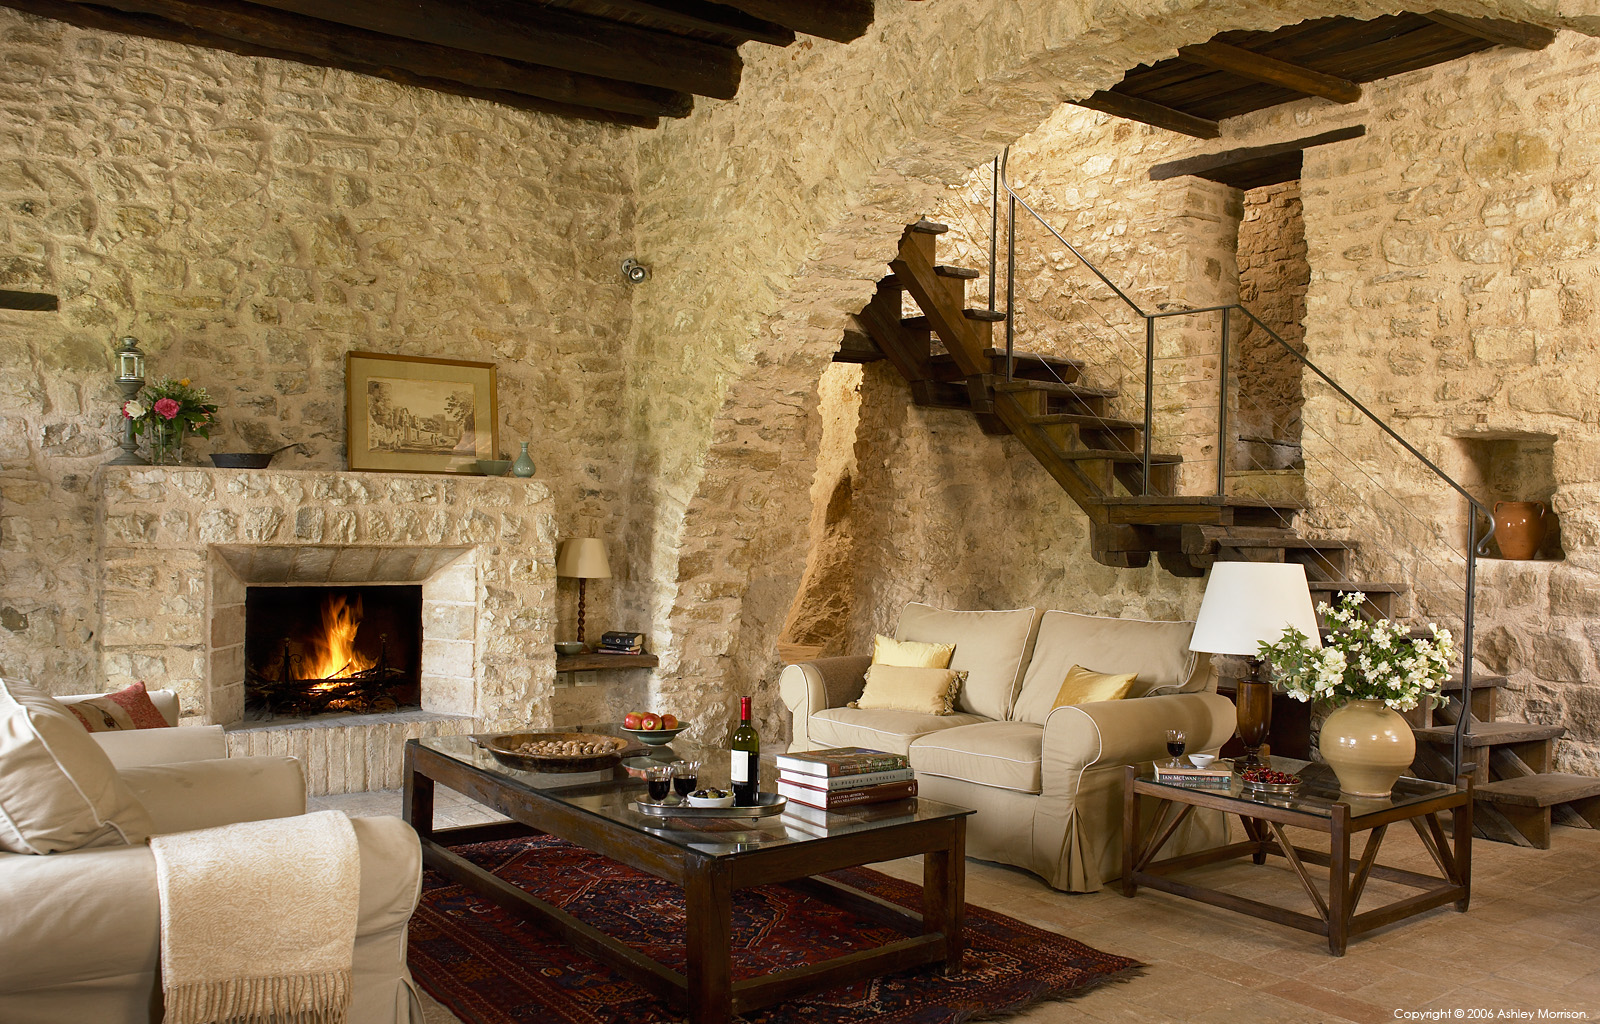 The sitting room in Casa dell'Arco at Borgo Pianciano in the Umbria Region of Italy near Spoleto.